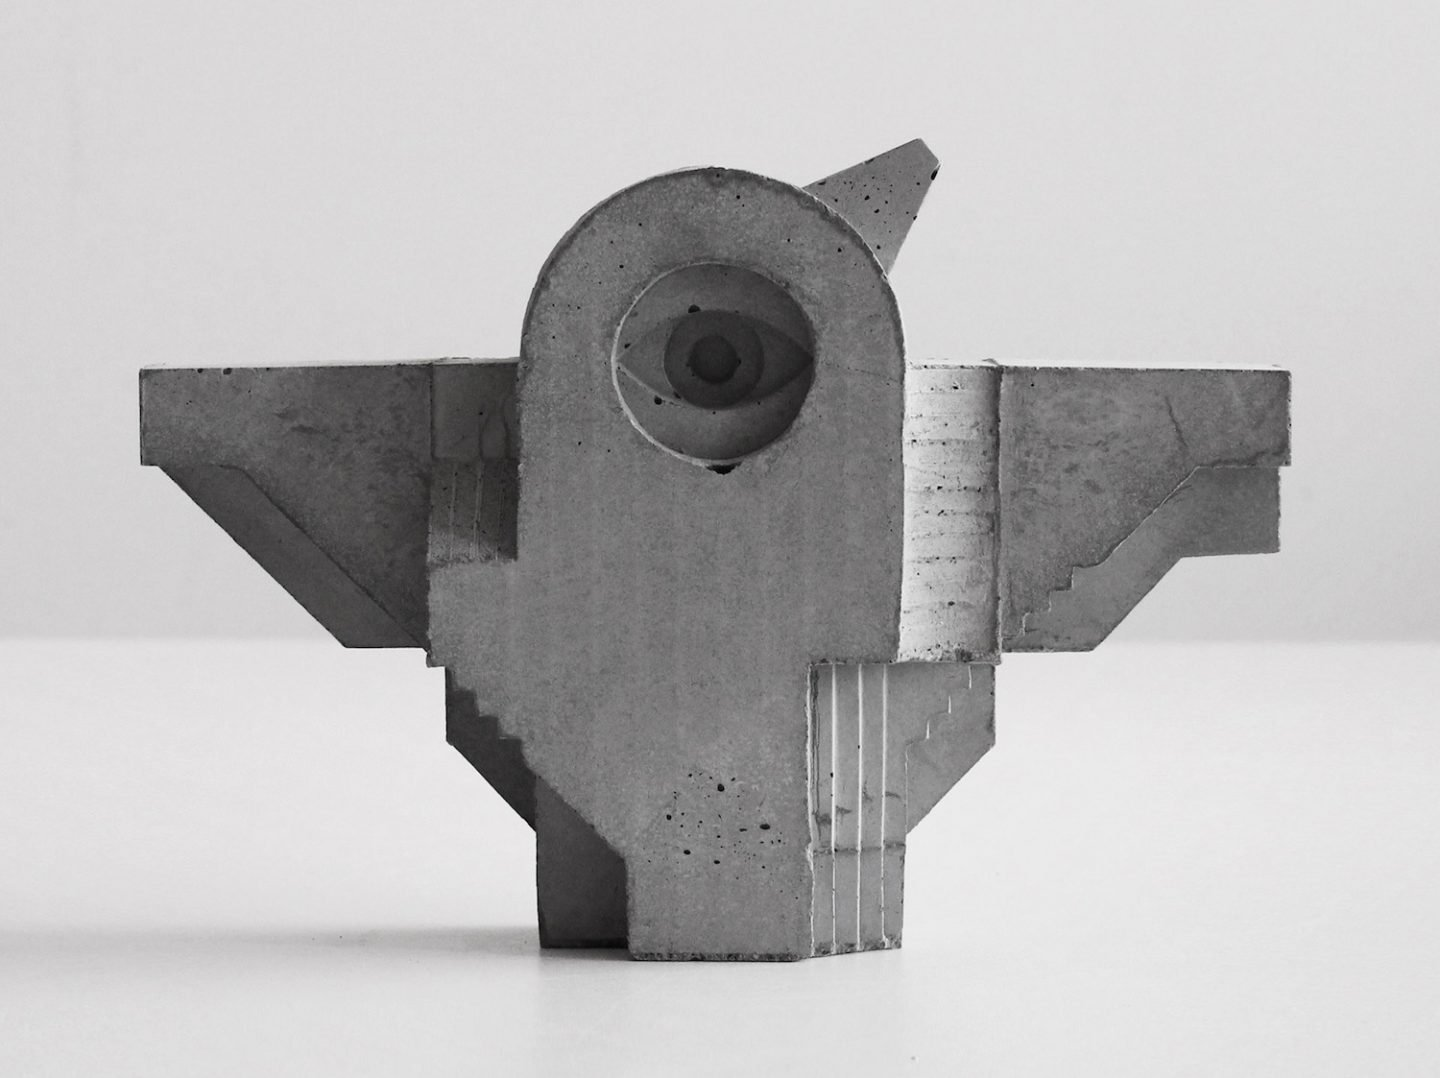 iGNANT_Art_Concrete_Modular_Sculptures_David_Umemoto09